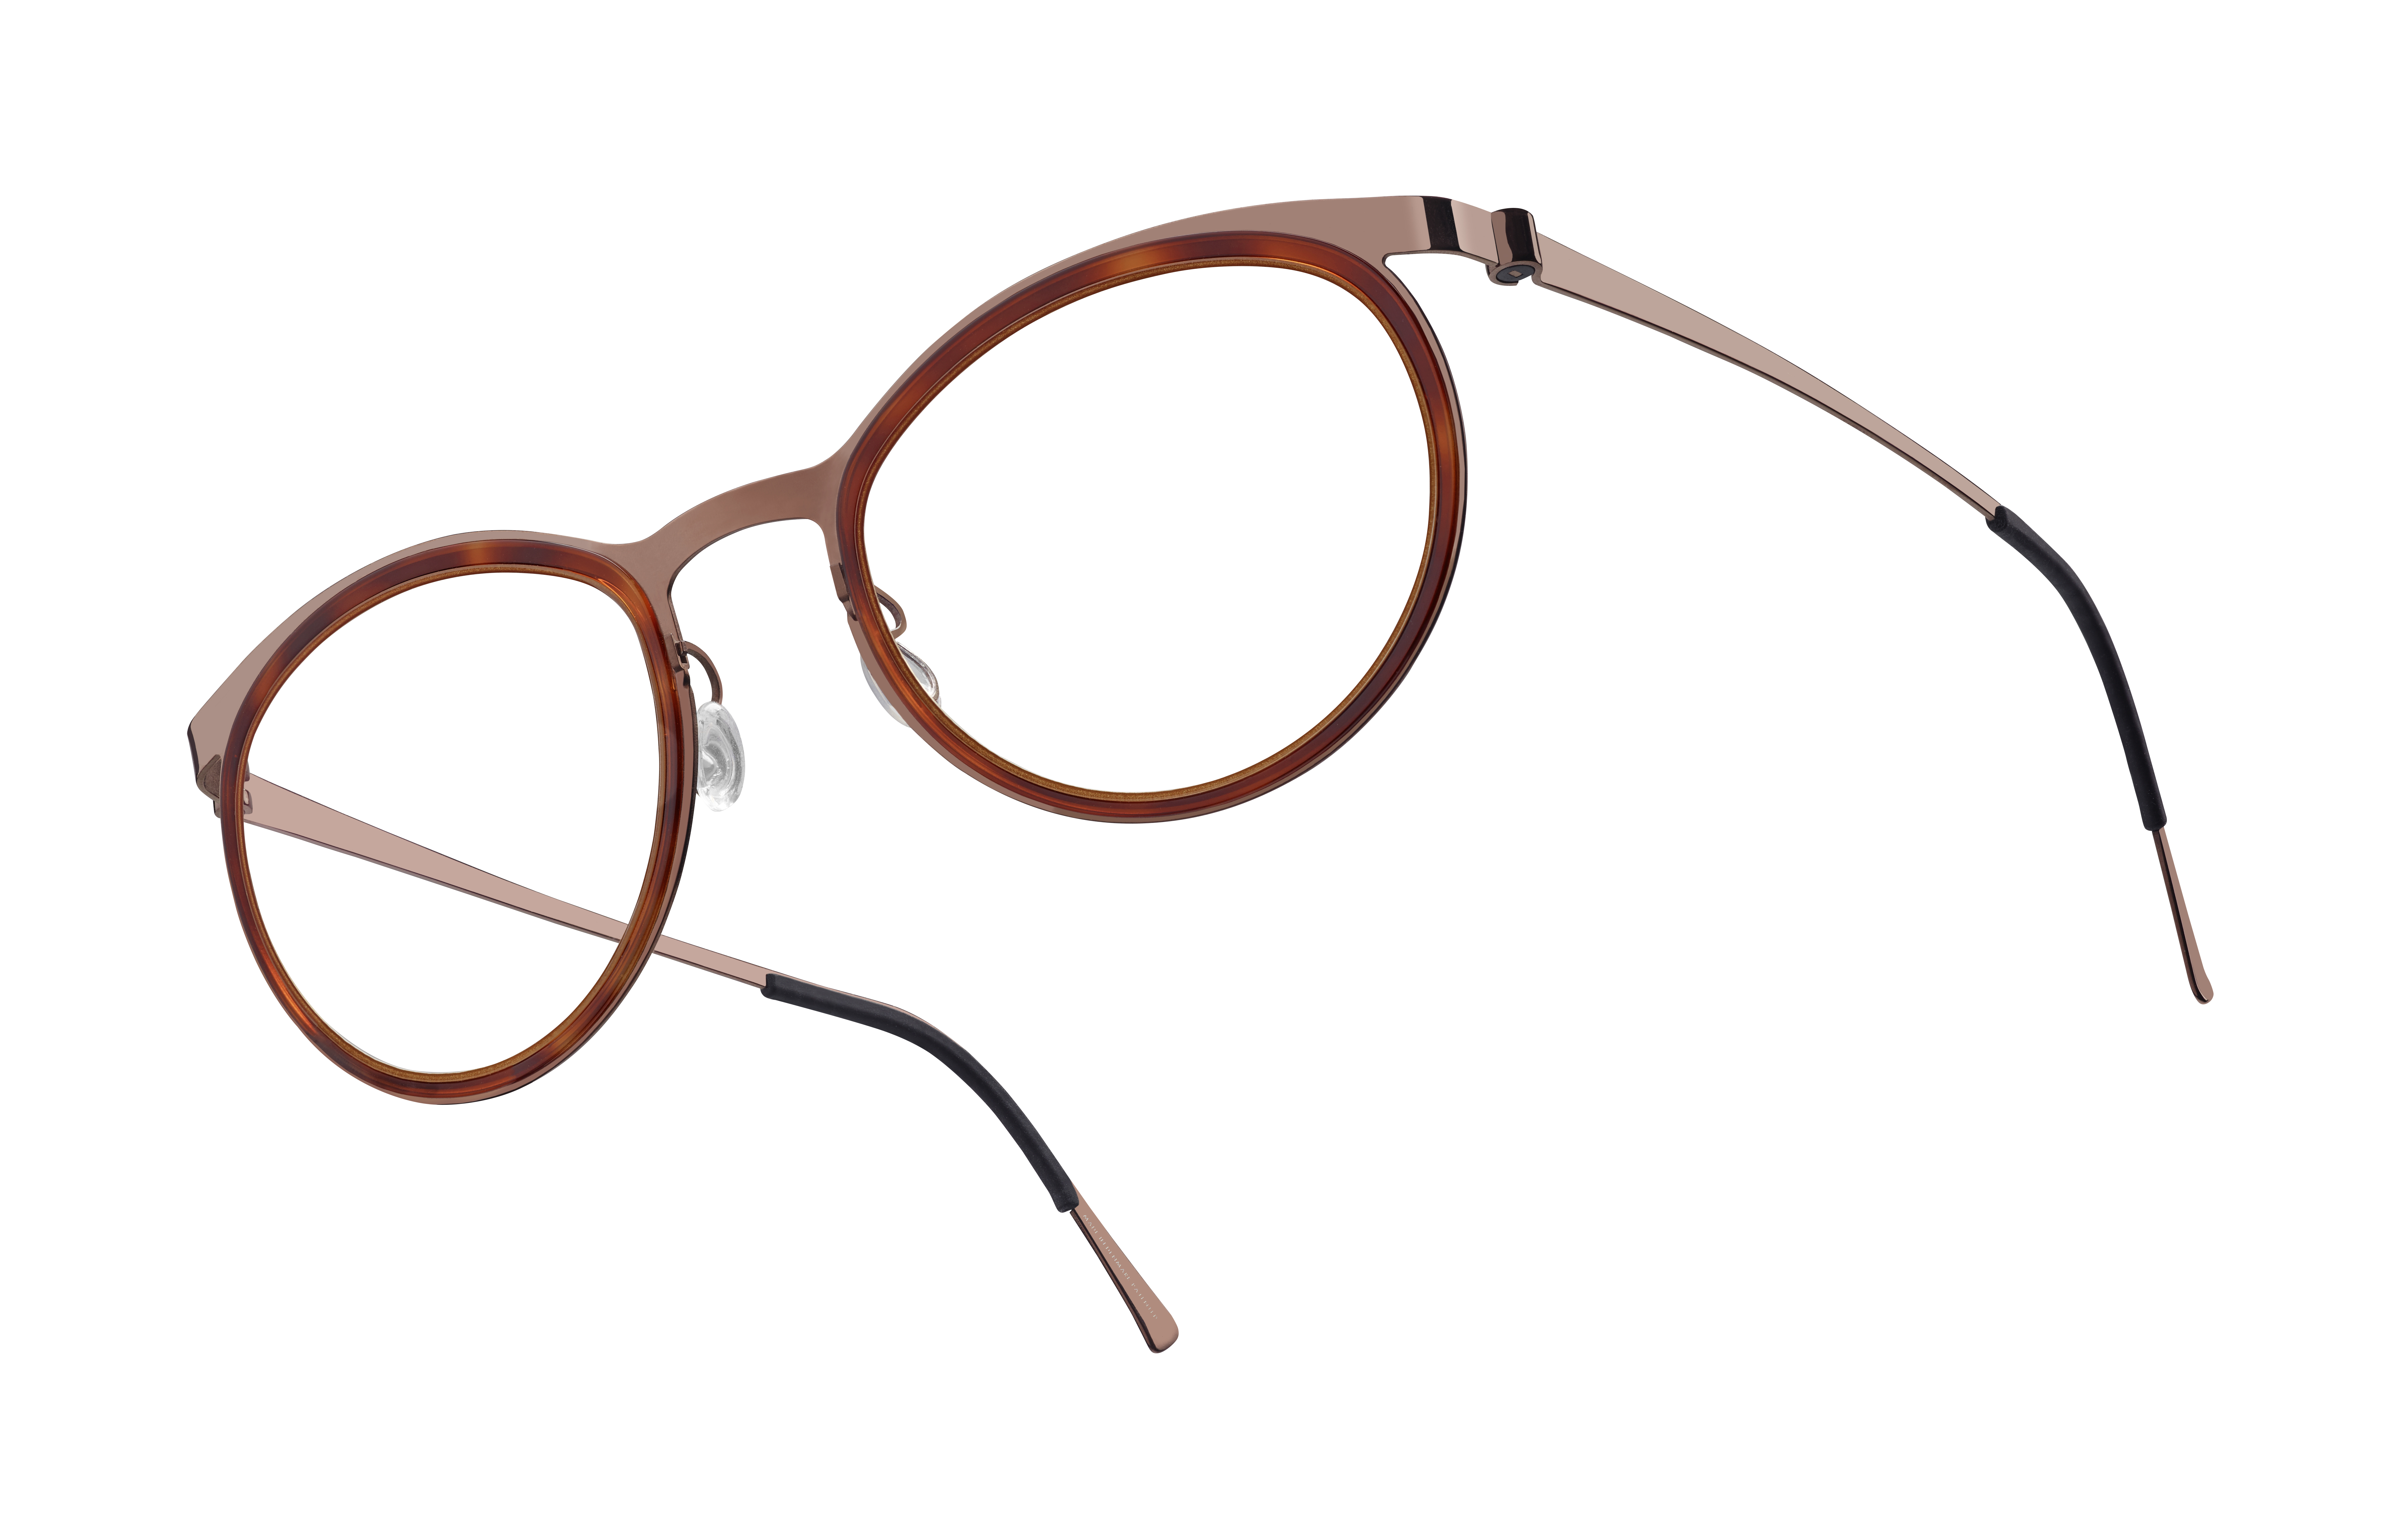 Spectacles – Lauder & Rees